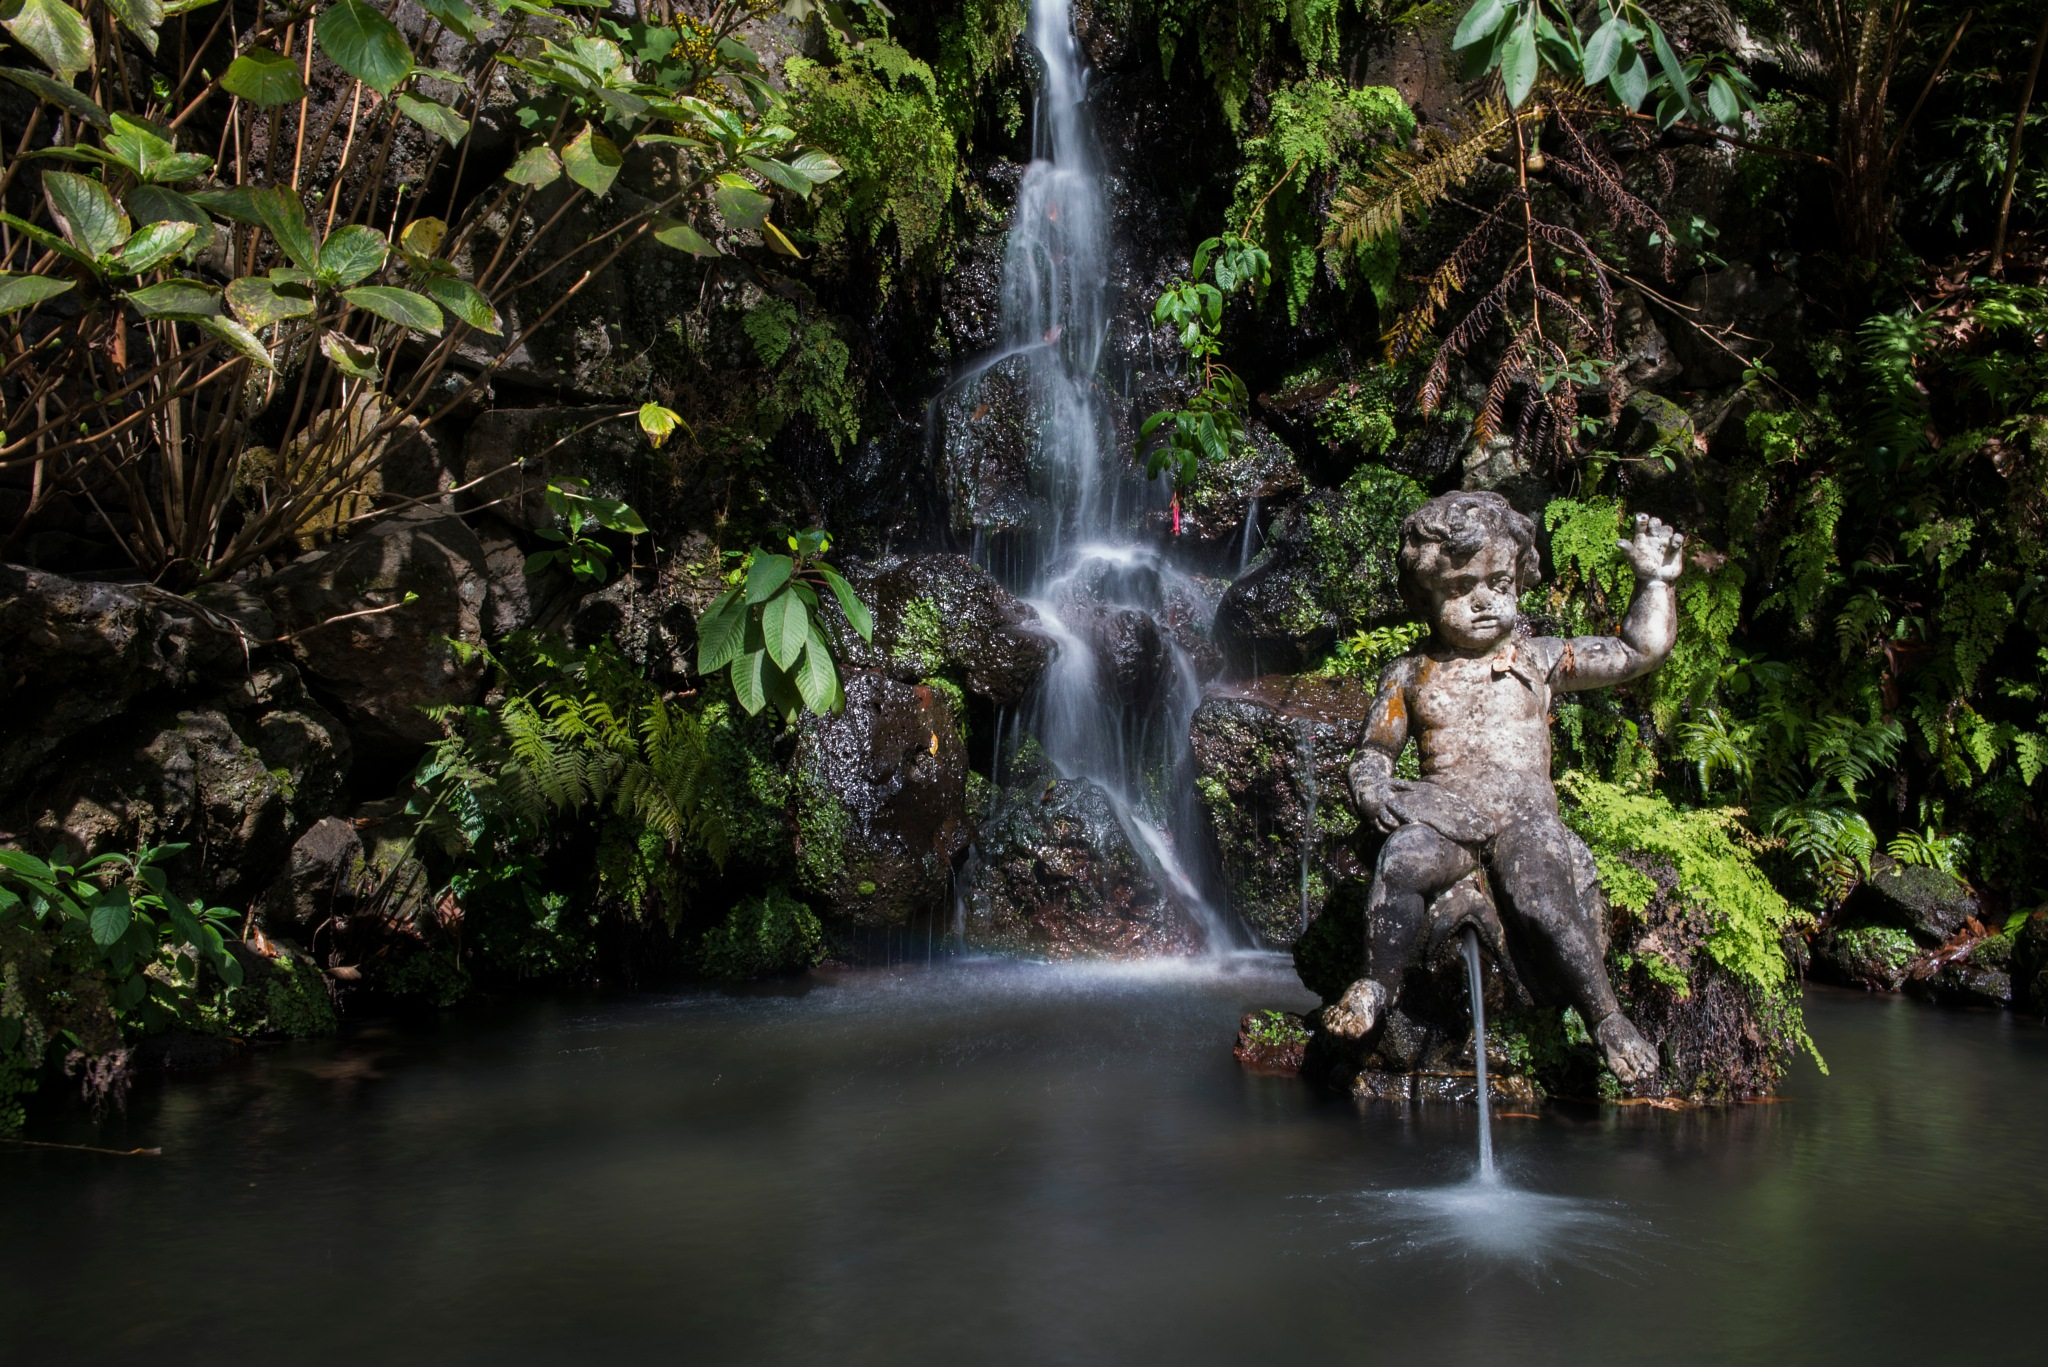 Monte Palace Tropical Garden by Linda Persson